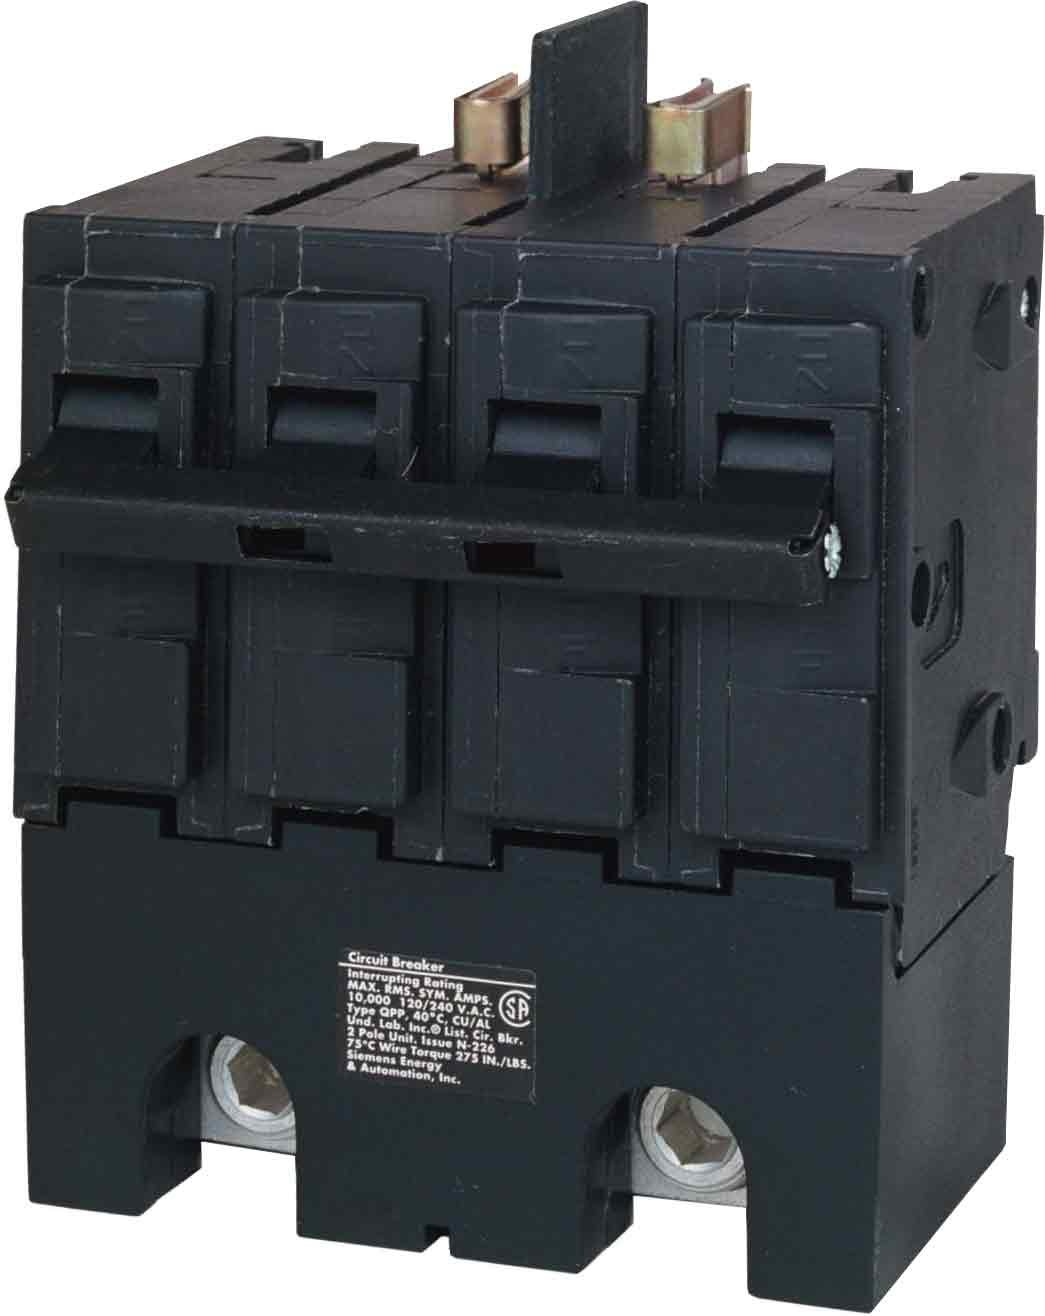 Murray MPP2200 120/240-Volt 4-pole type MPP 200-Amp Main Breaker